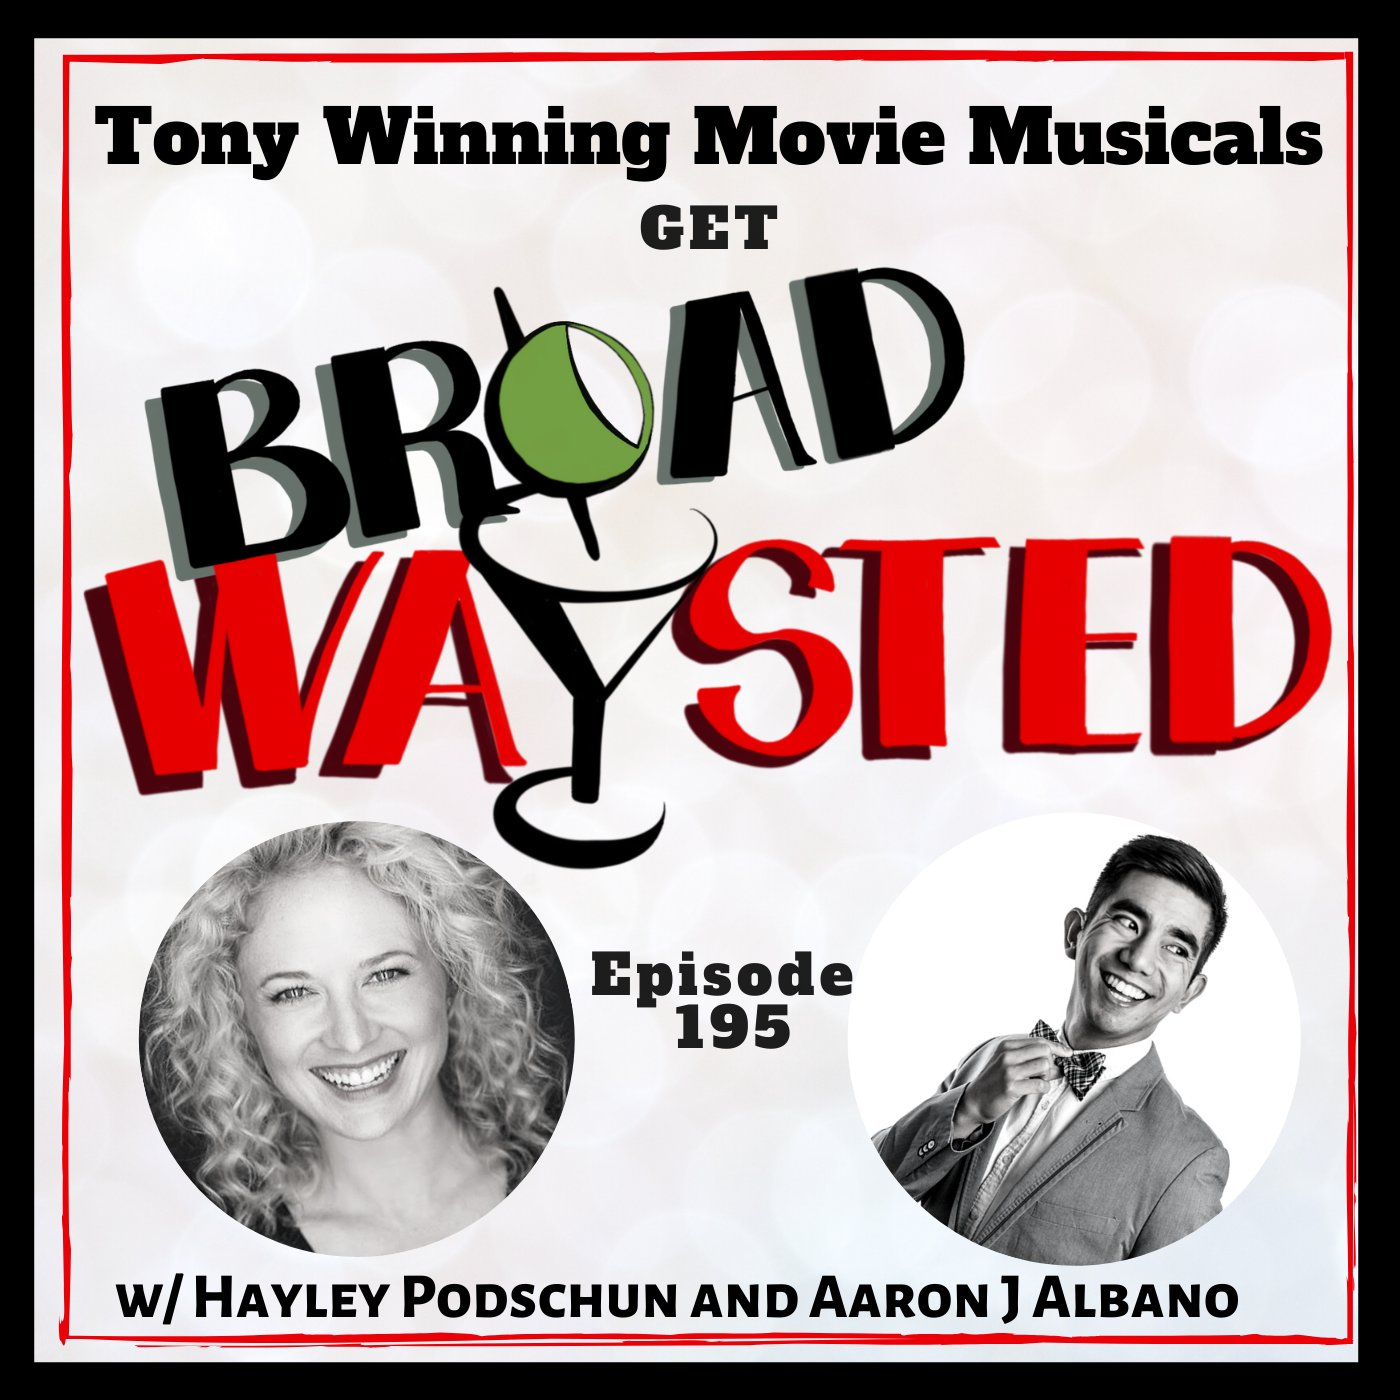 Broadwaysted - Episode 195: Tony Winning Movie Musicals get Broadwaysted!